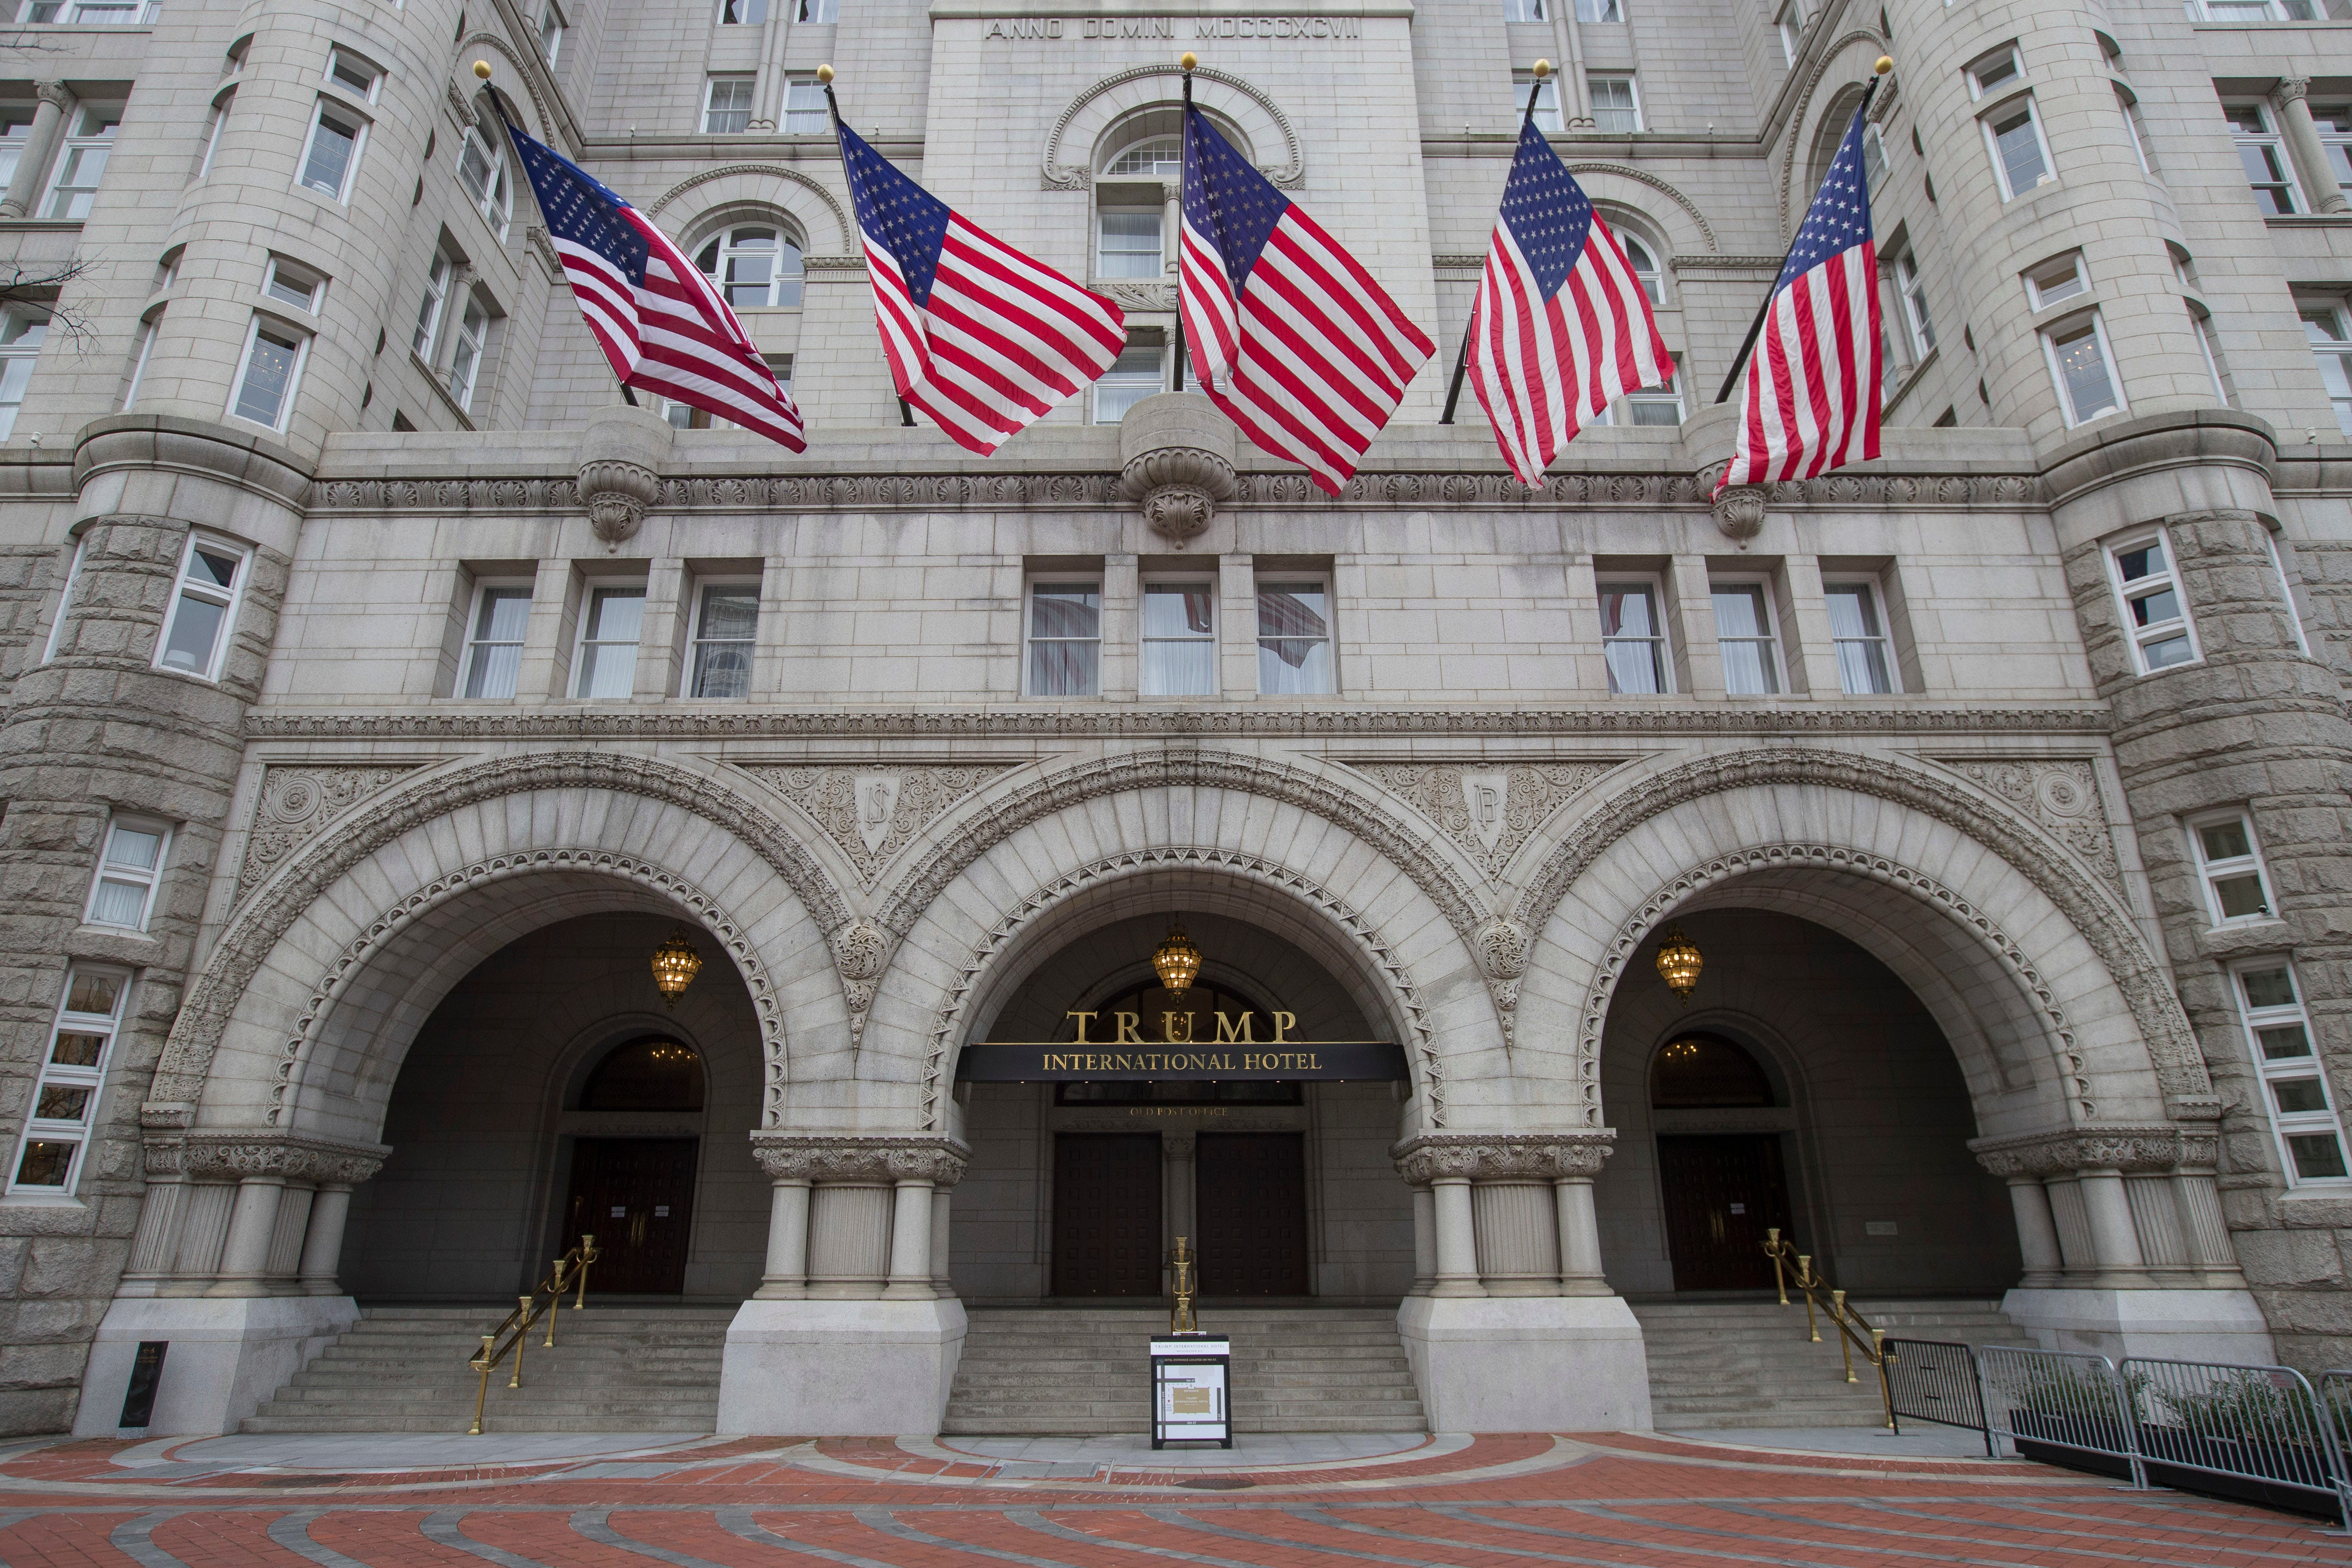 Watchdog: Federal property managers ignored whether Trump hotel lease violated Constitution